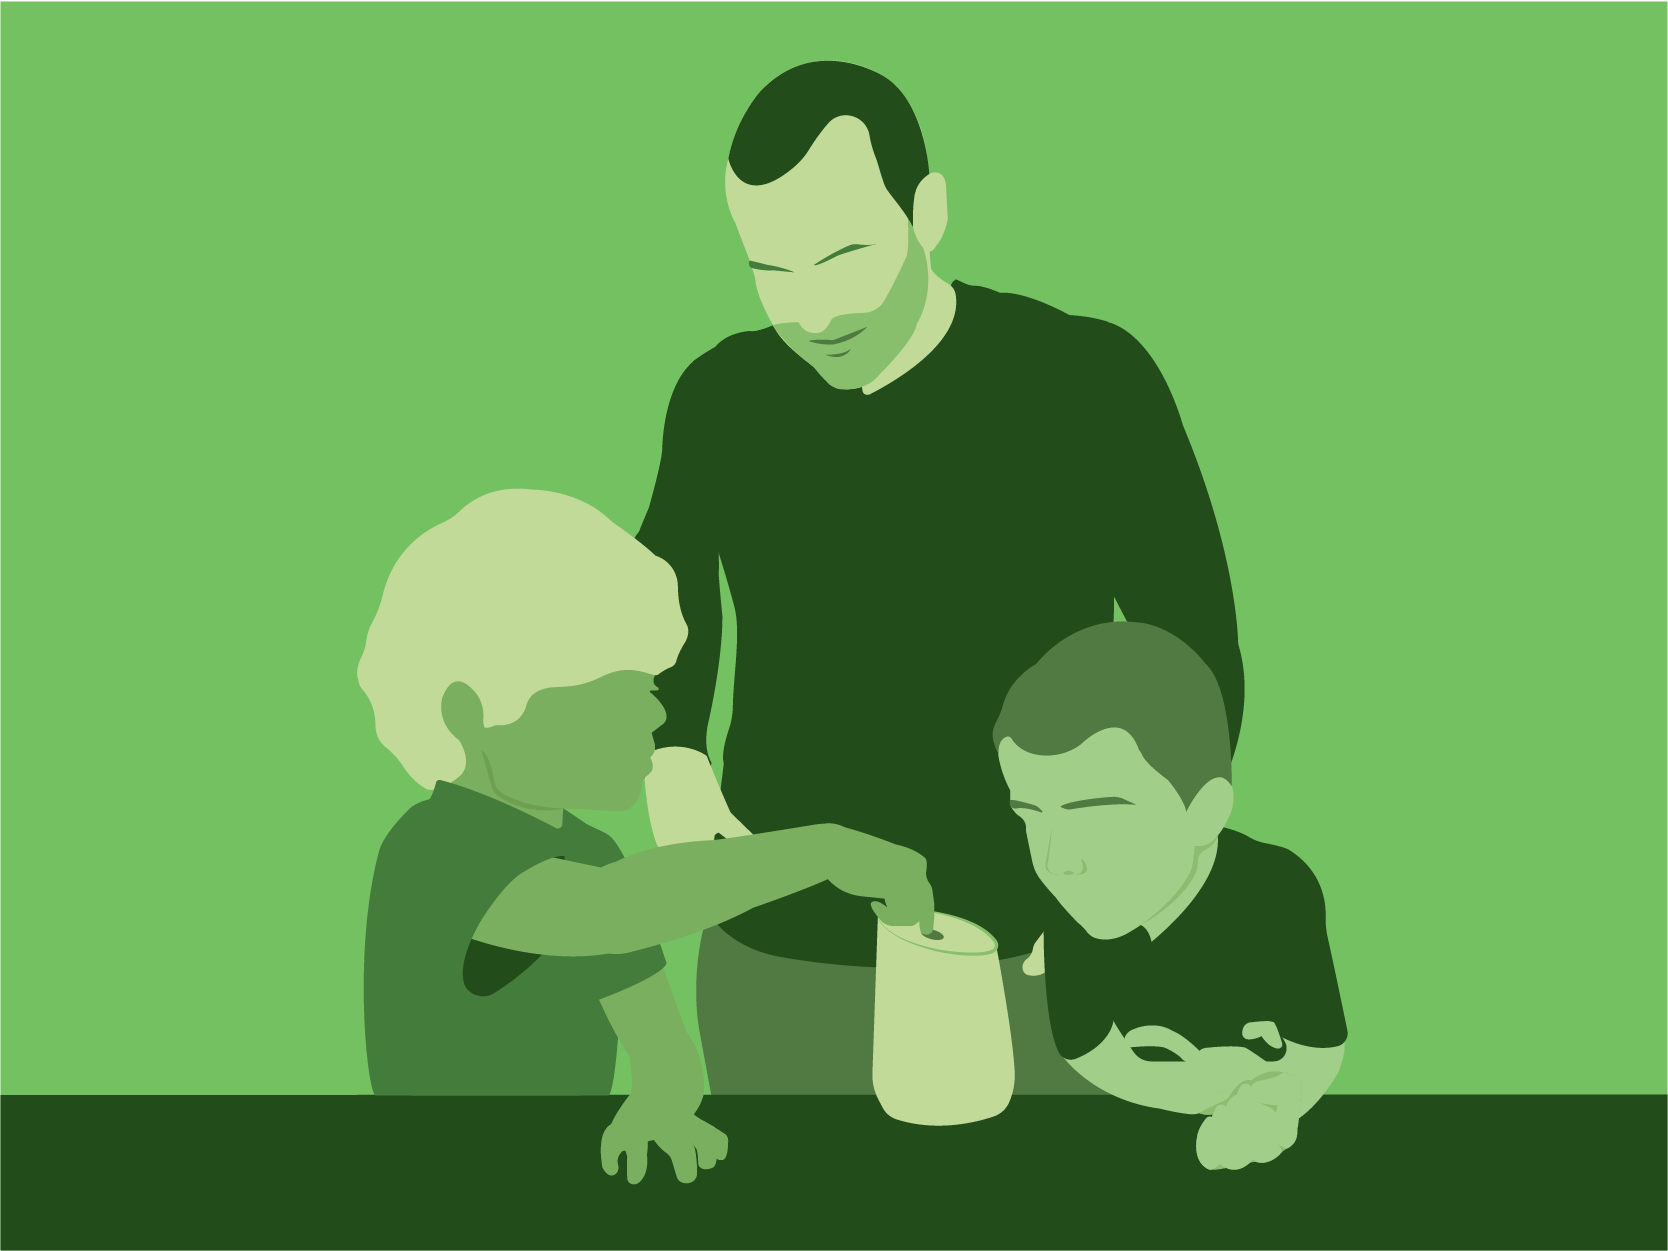 Man with two young children playing with smart speaker device. Illustration.